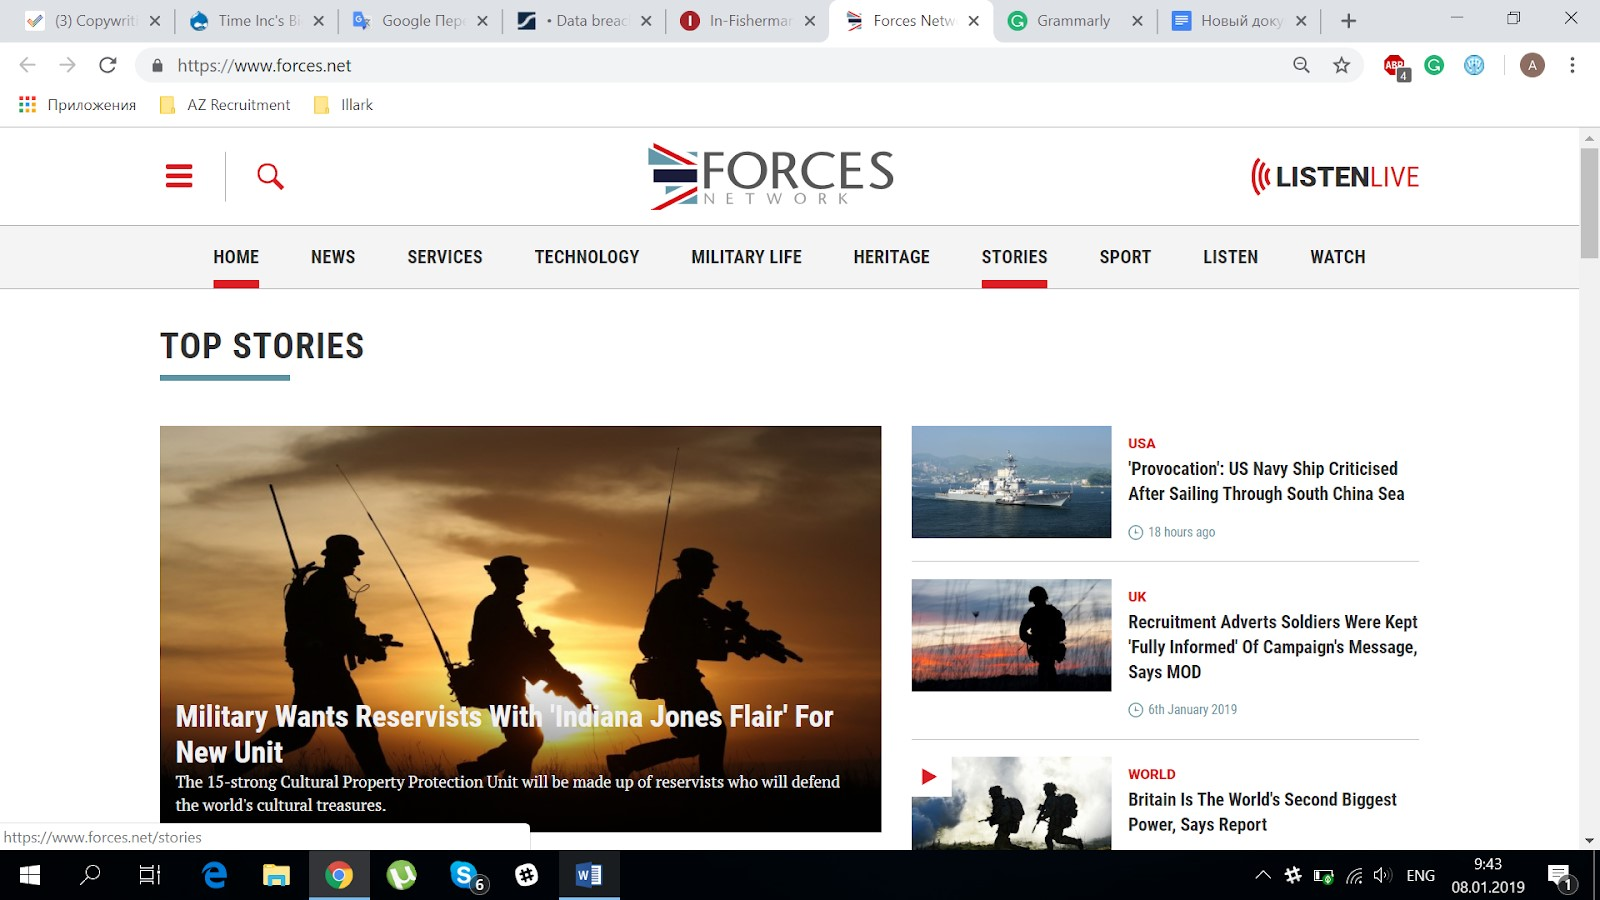 The Forces Network